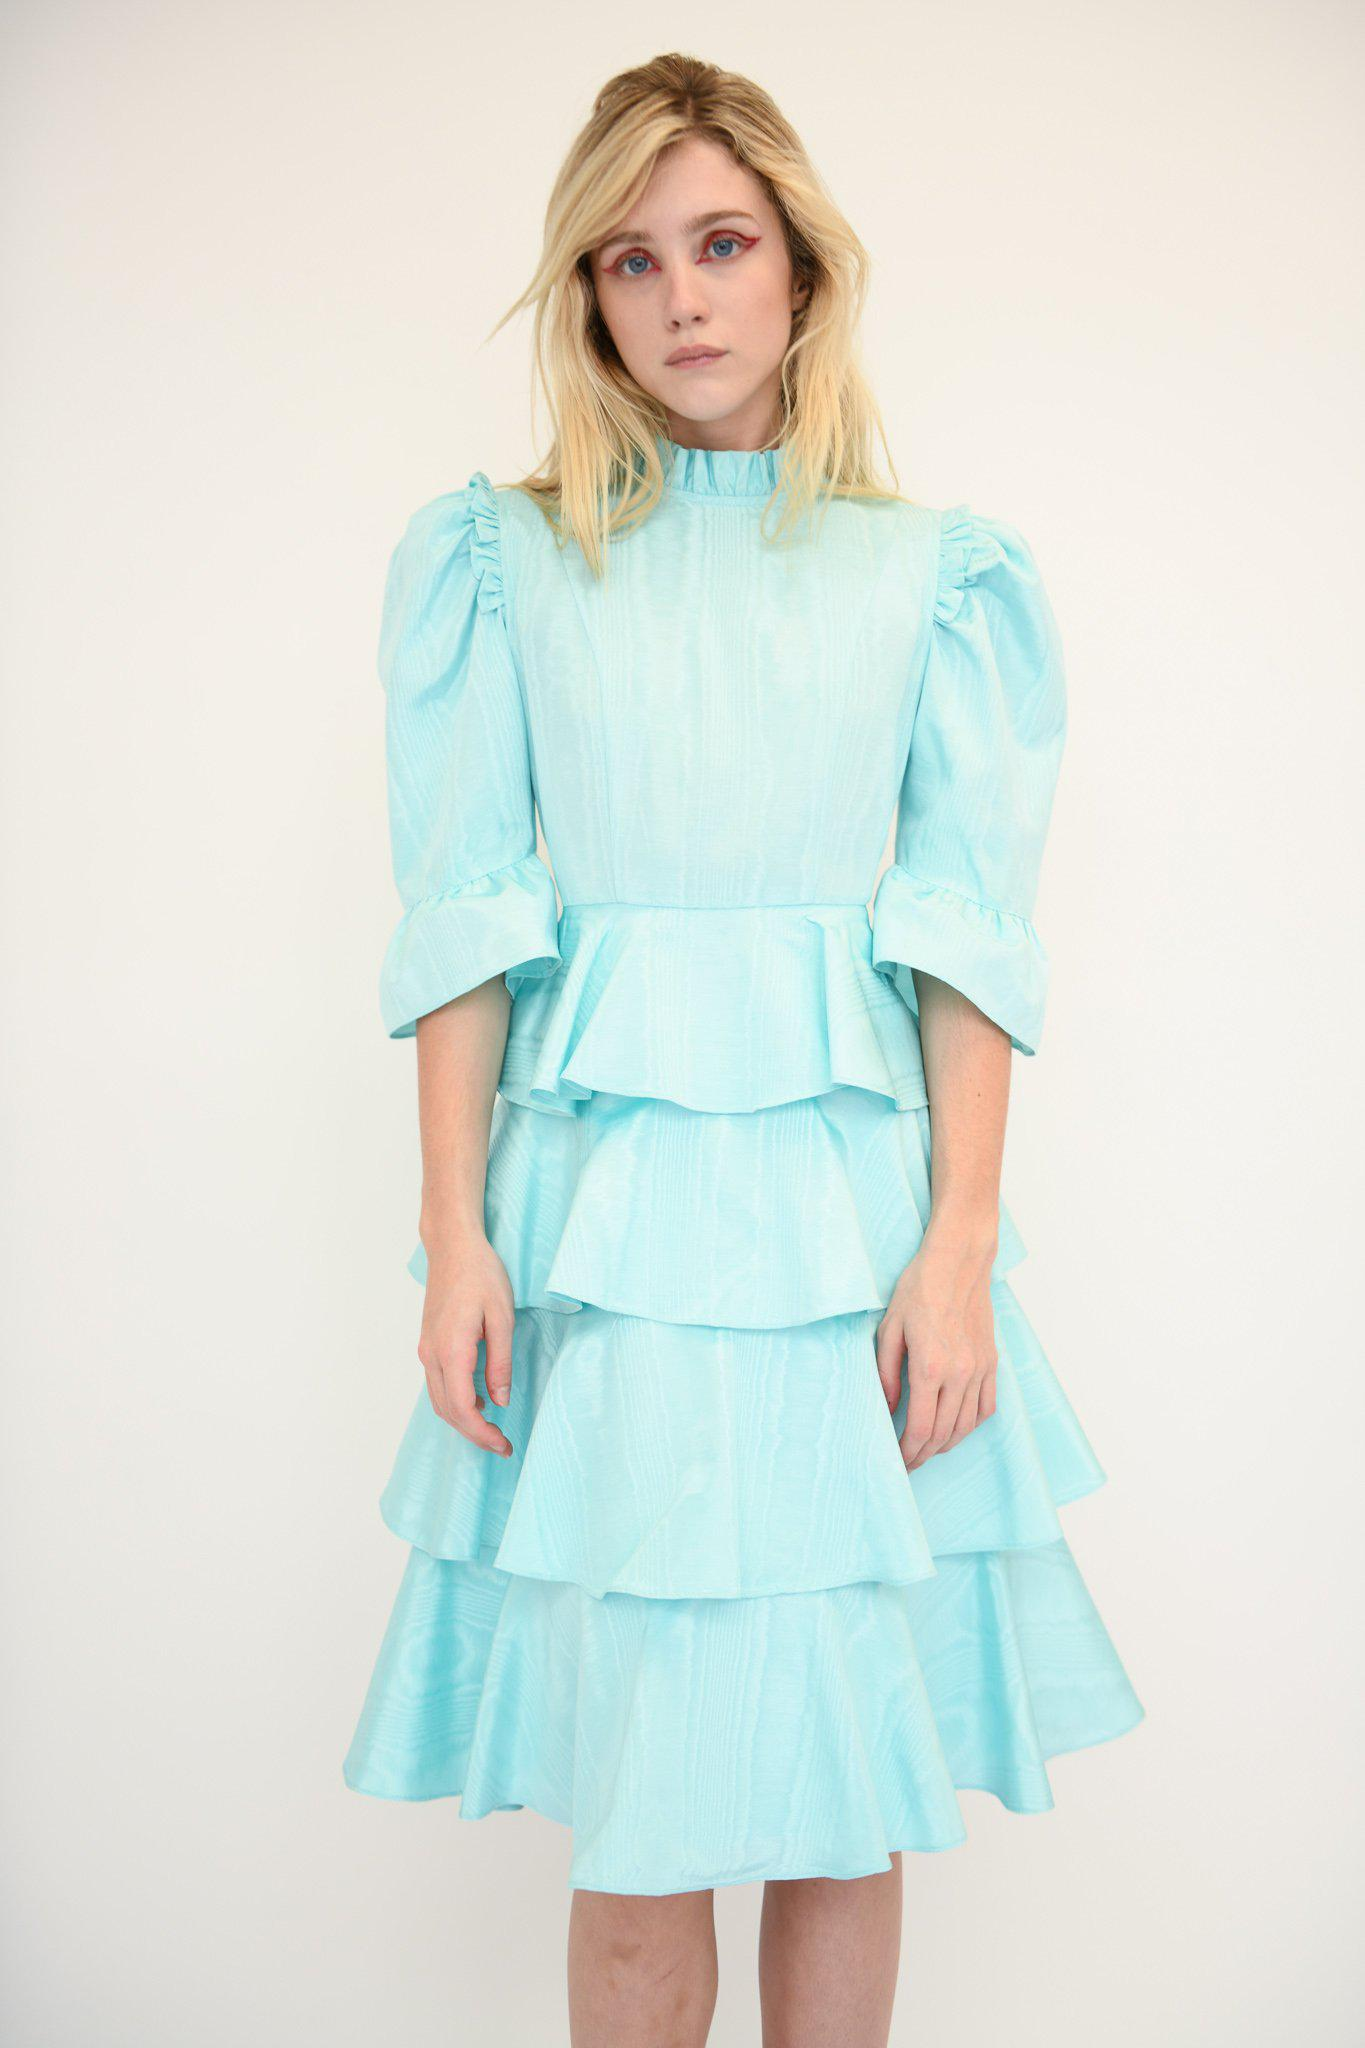 Spring Confection Dress in Aqua Moire 1